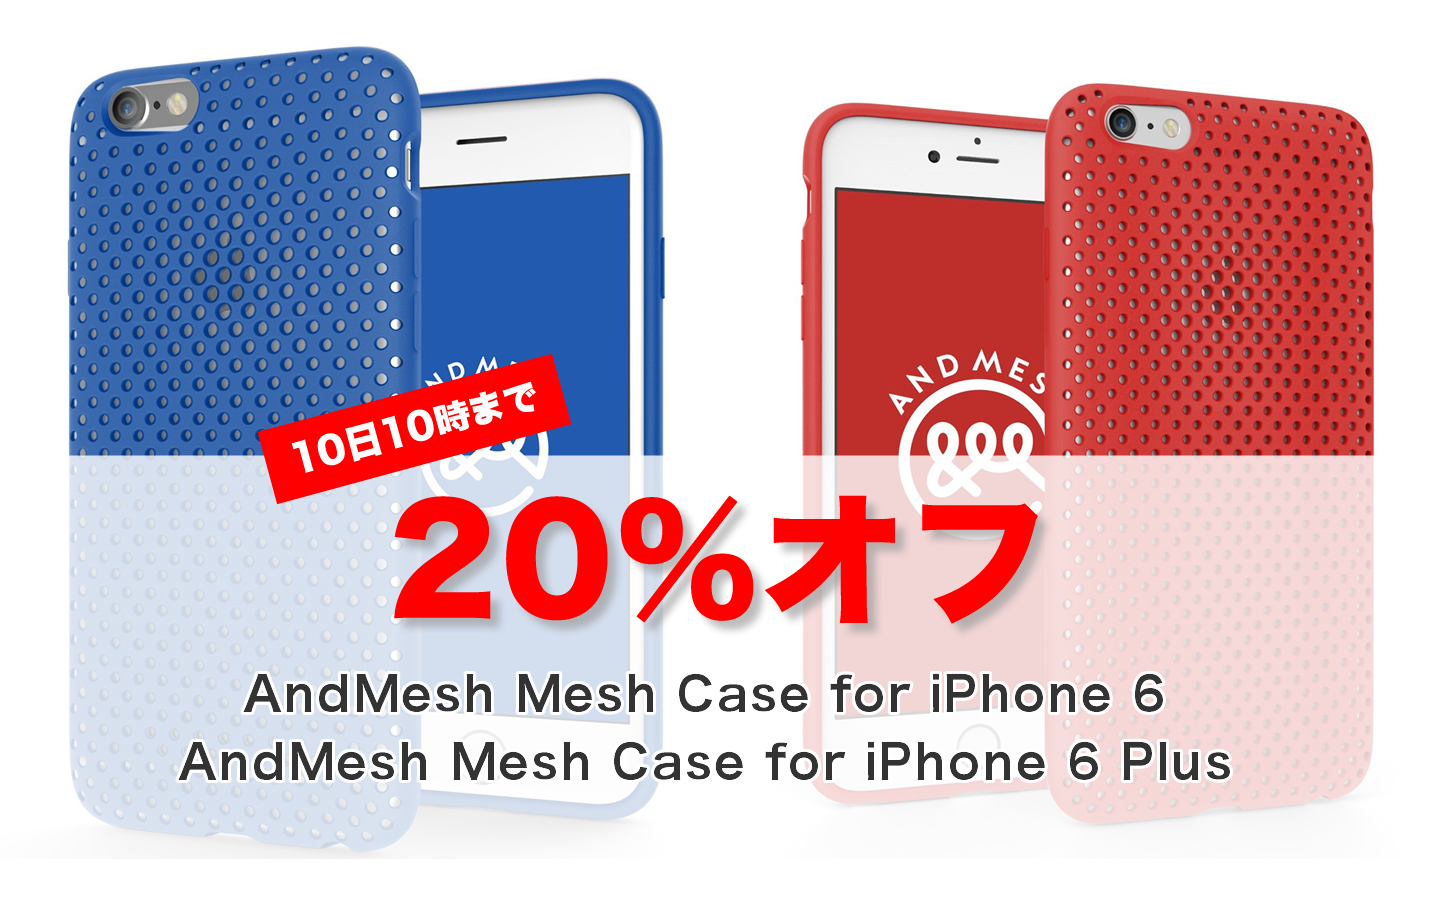 AndMesh Mesh Case Sale